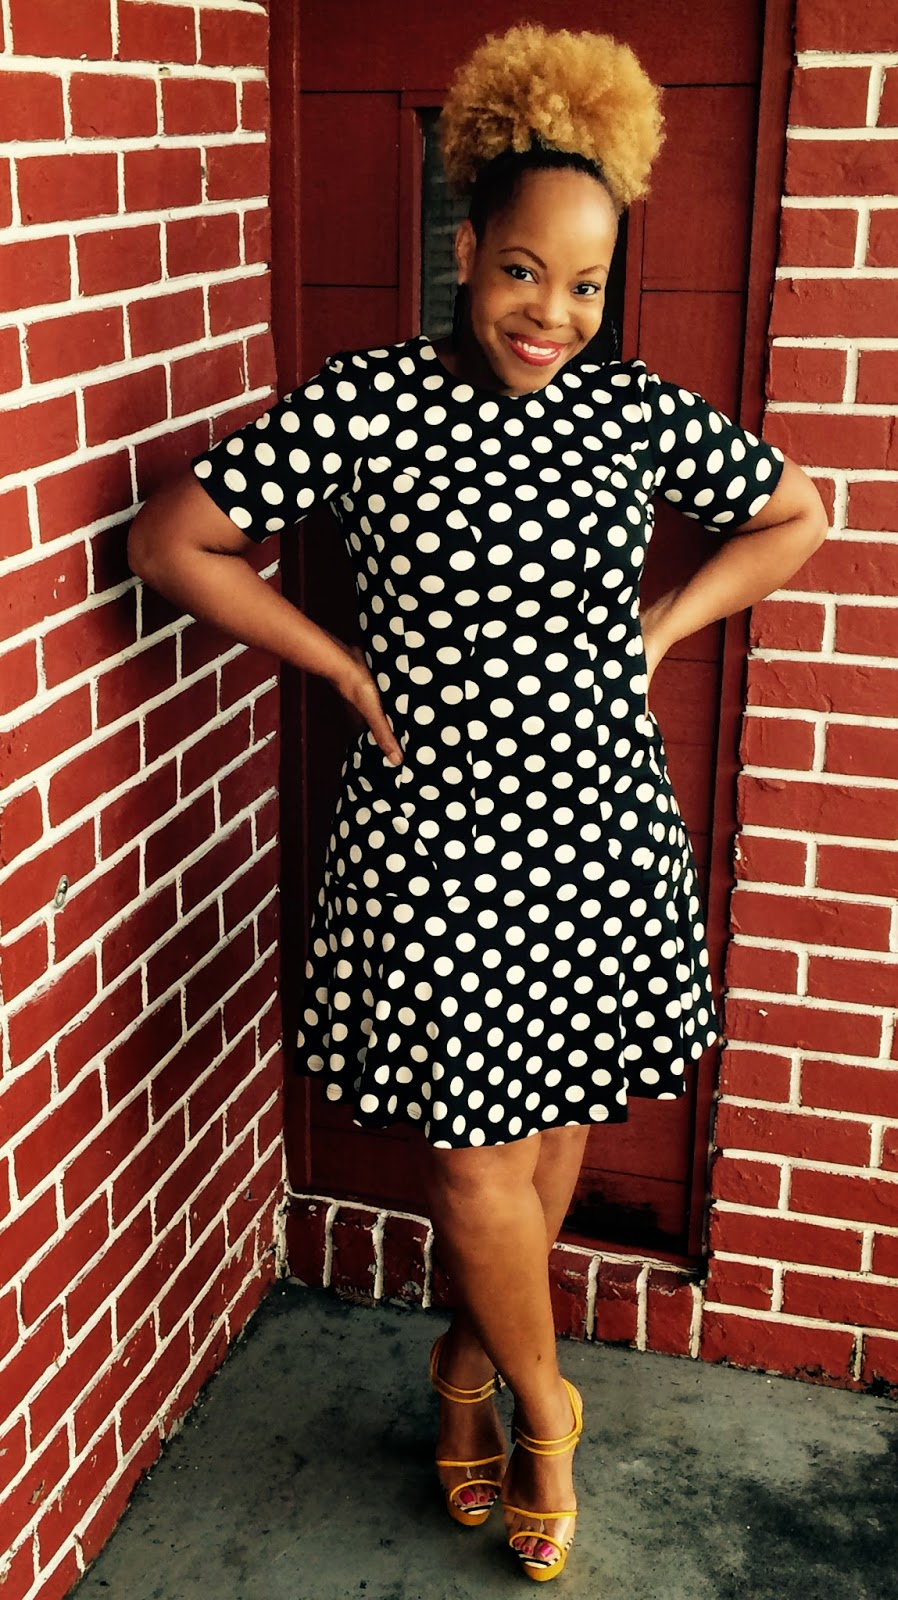 Burlington Polka Dot Dresses